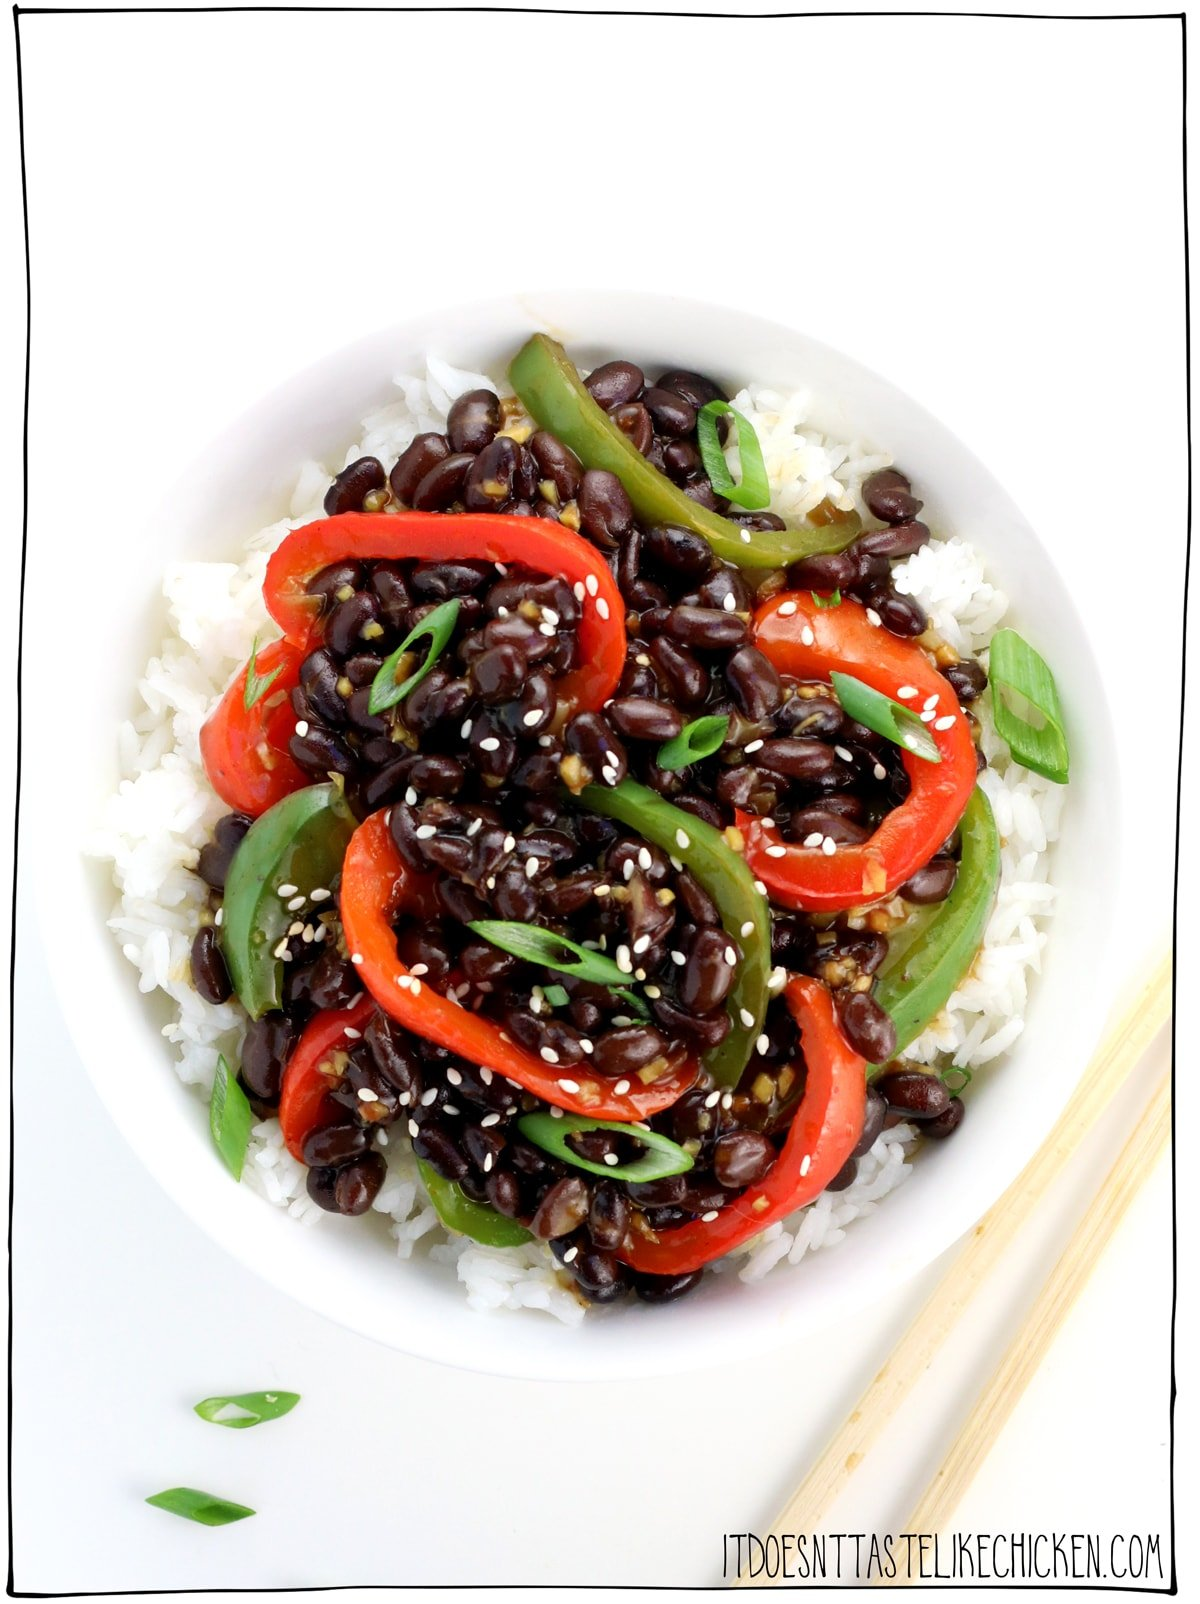 Vegan Pepper Black Bean Stir-Fry! Just 10 ingredients and 15 minutes to make, this is the vegan version of that Chinese-American pepper steak dish. It's not only incredibly delicious, but it's even easier to make than the traditional version. Perfect for meal prepping. Gluten-free, oil-free versions. #itdoesnttastelikechicken #veganrecipes